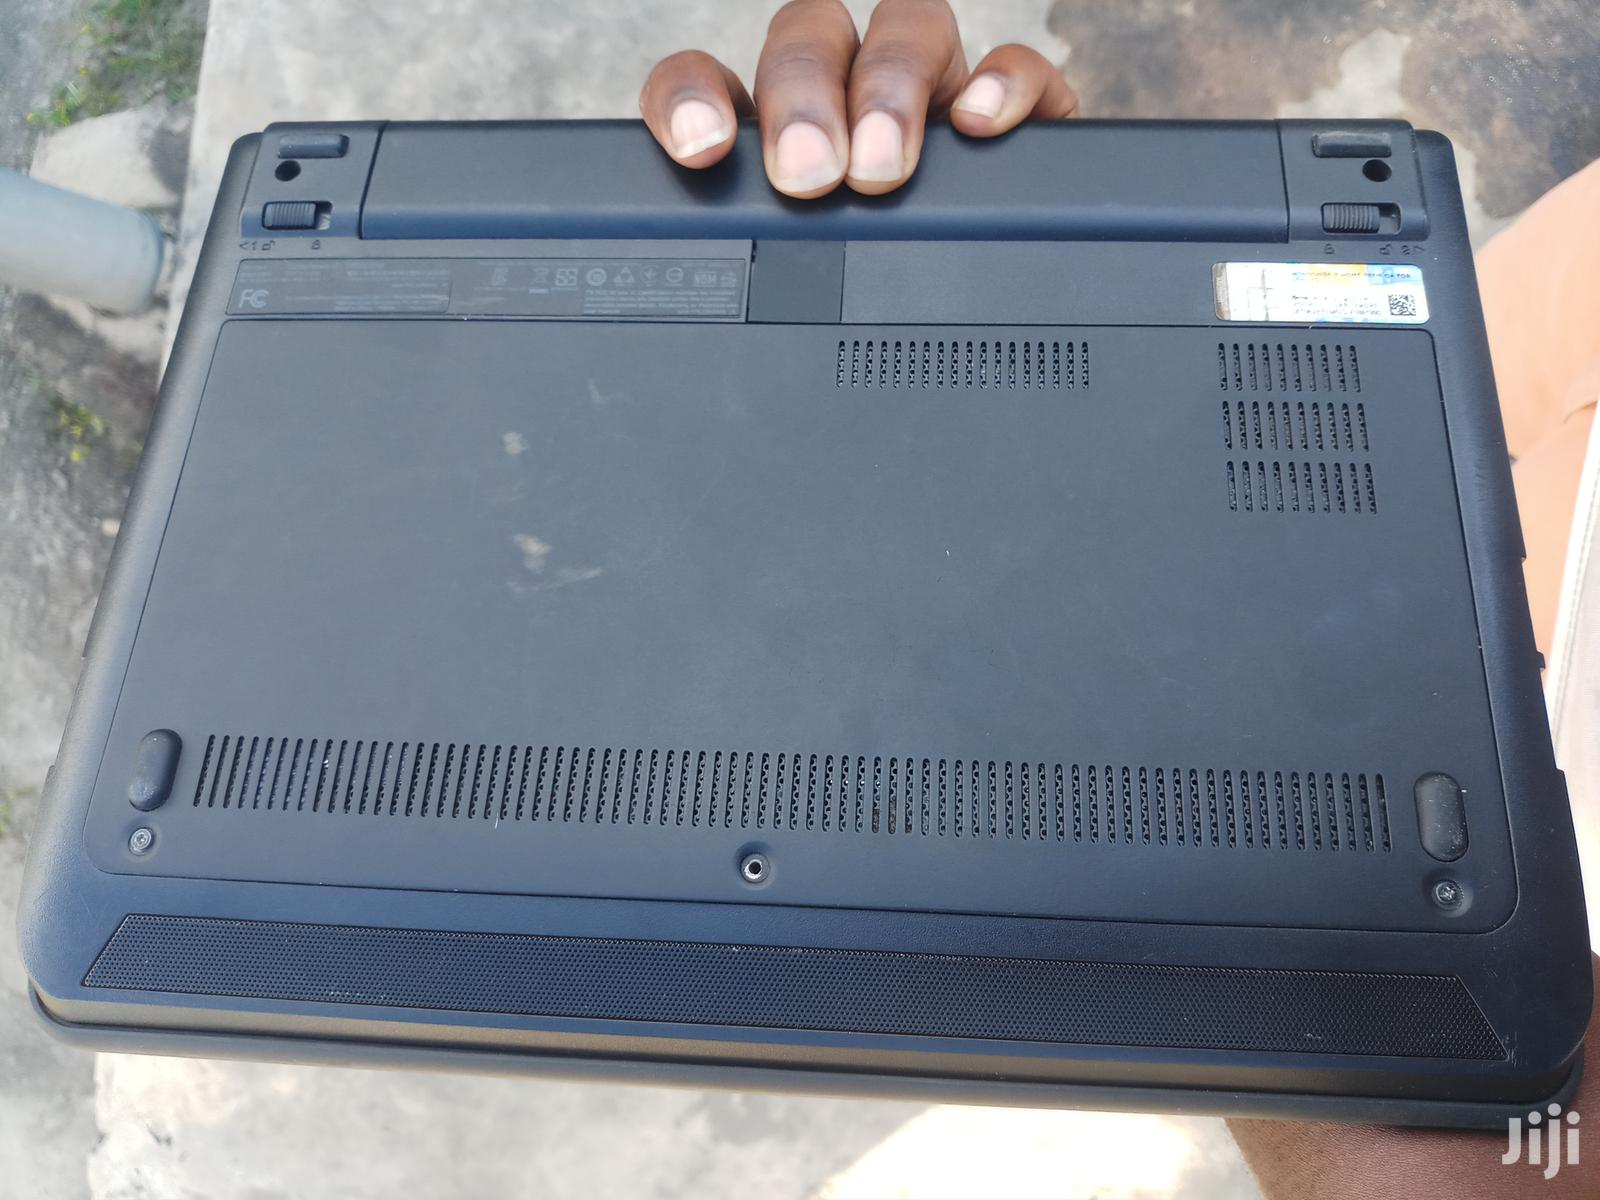 Archive: Laptop Lenovo ThinkPad X131e 4GB Intel Core i3 HDD 320GB